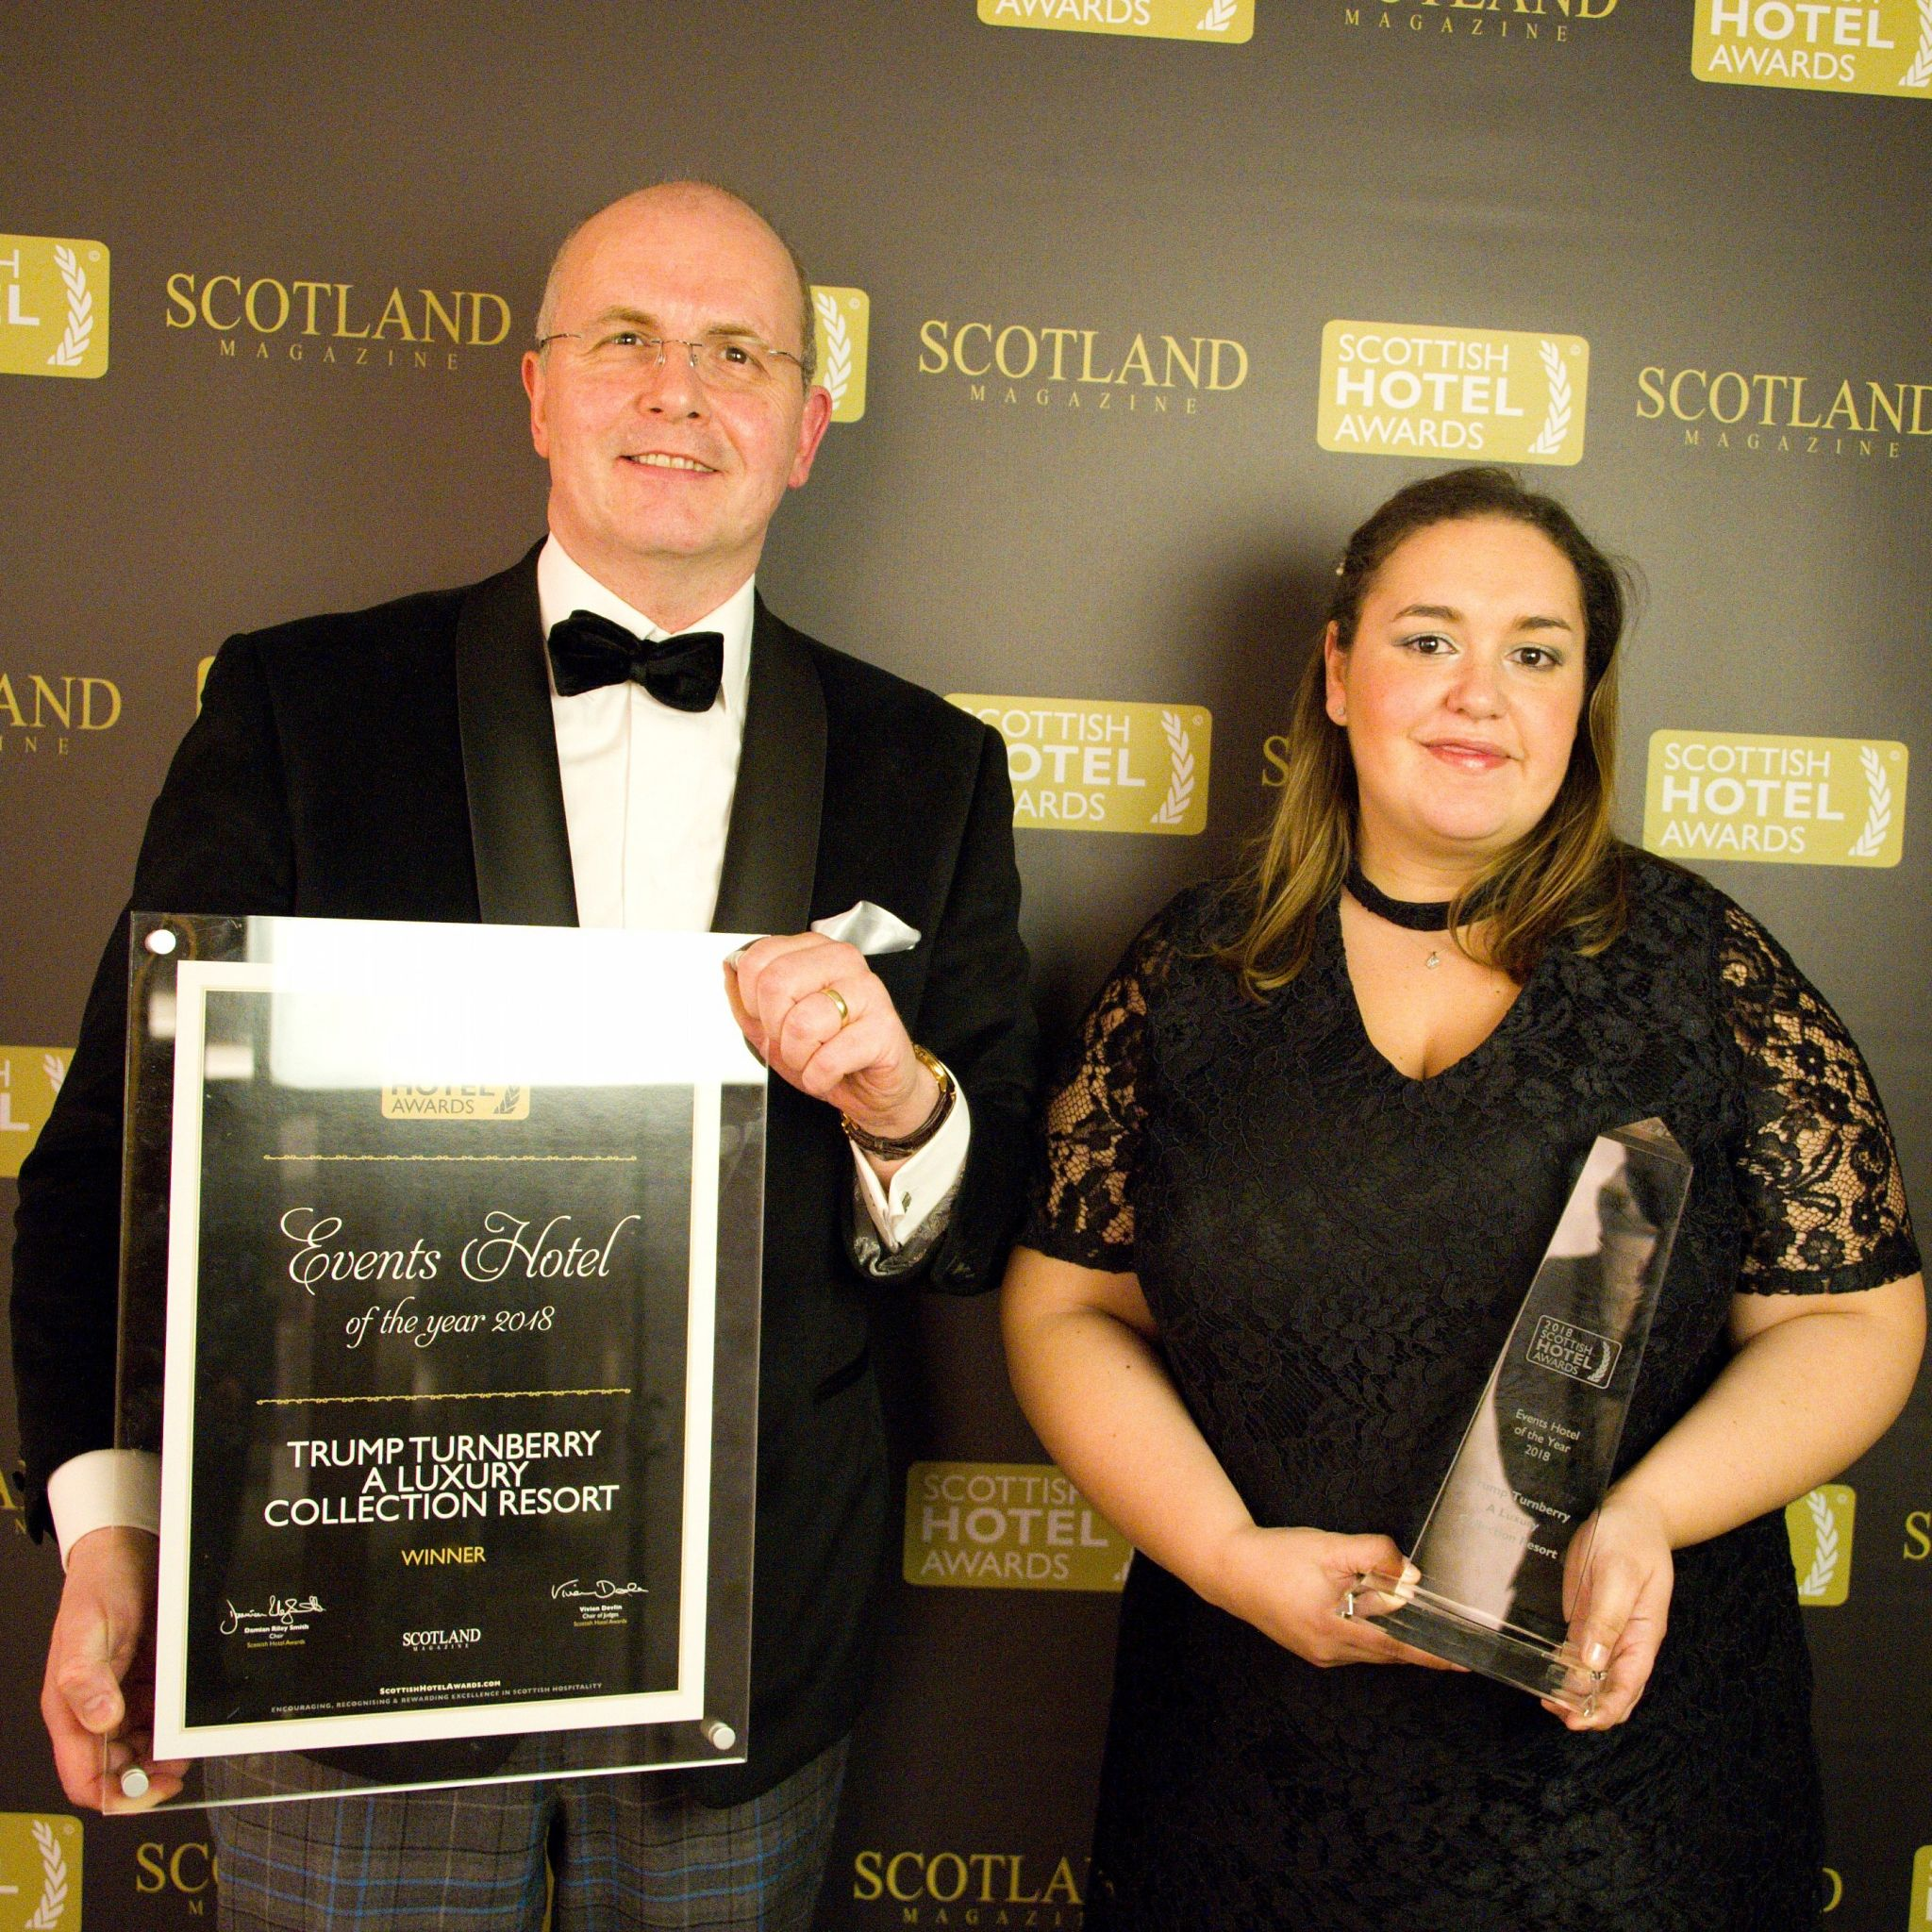 Trump Turnberry Events Hotel of the Year